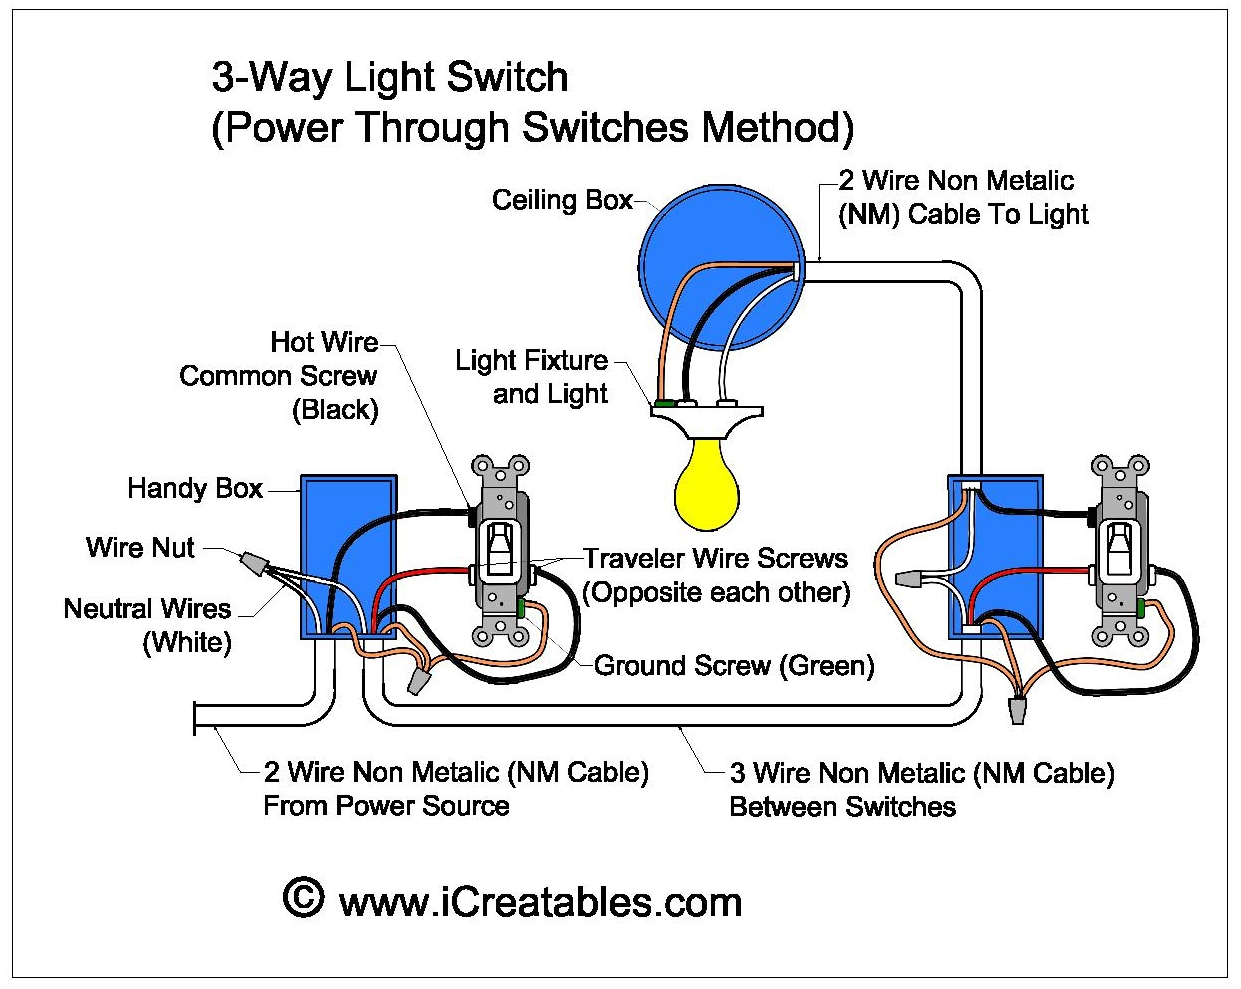 on off switch wiring diagram hdmi pinout colors wire a three way icreatables